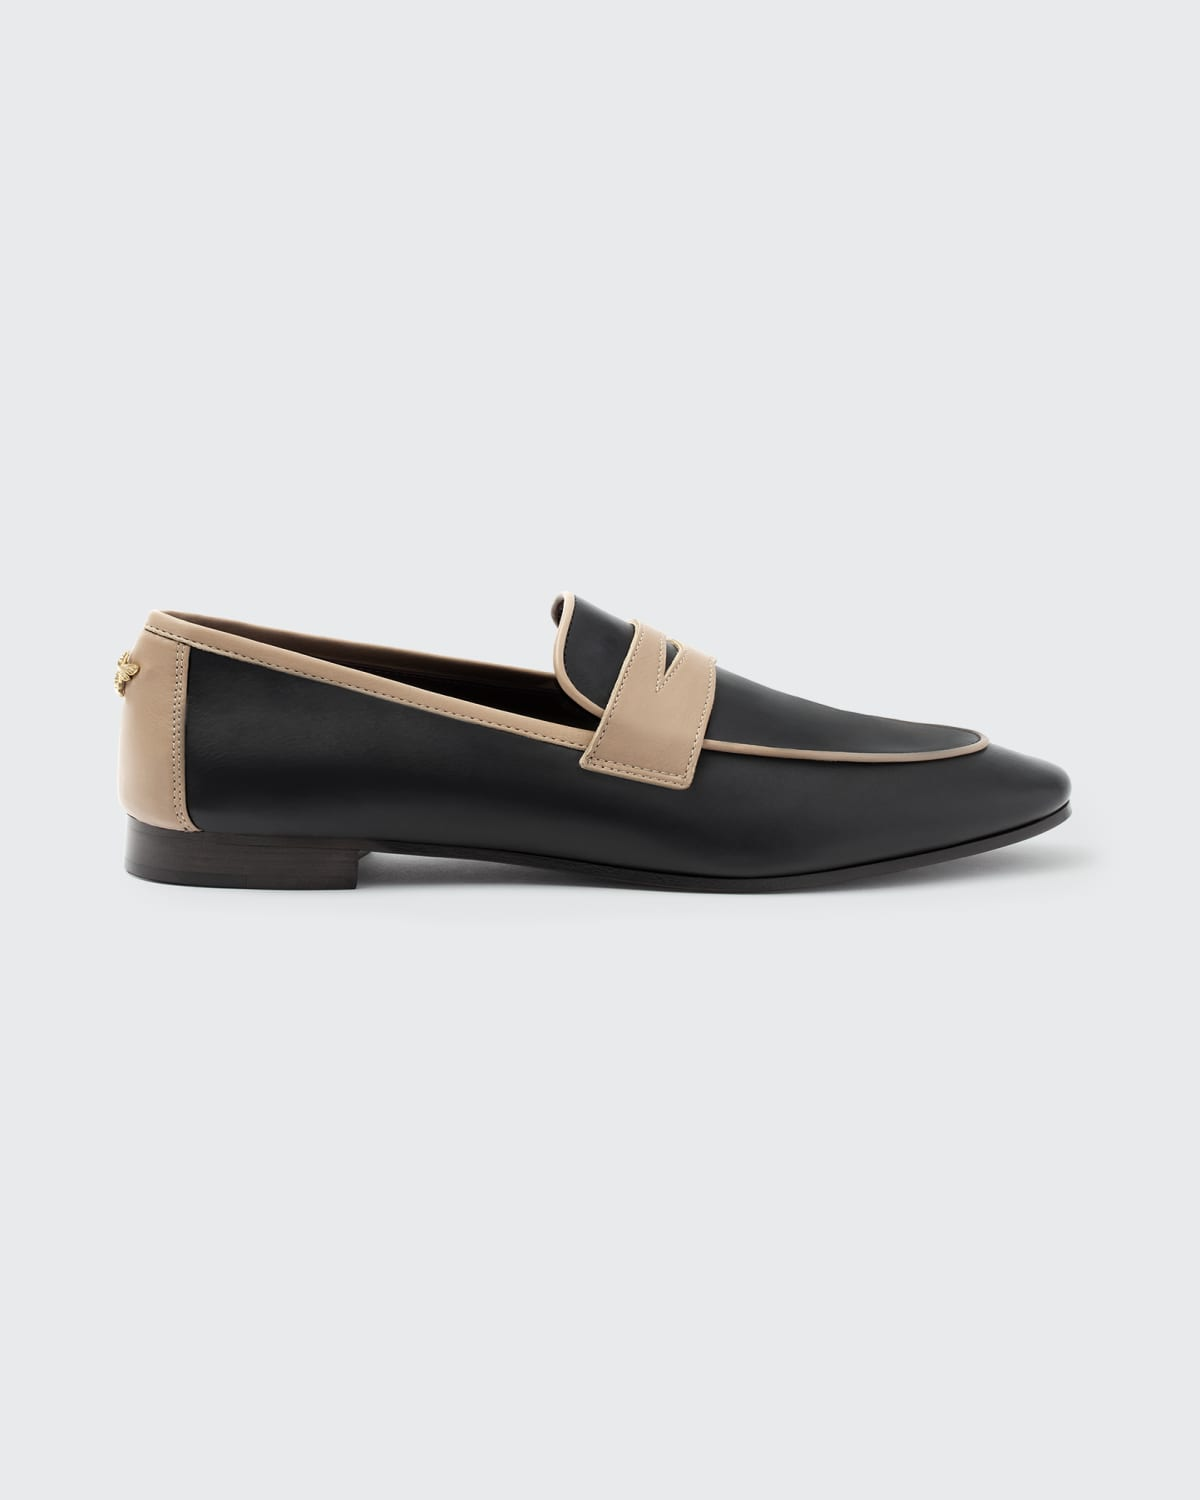 Bicolor Leather Slip-On Penny Loafers